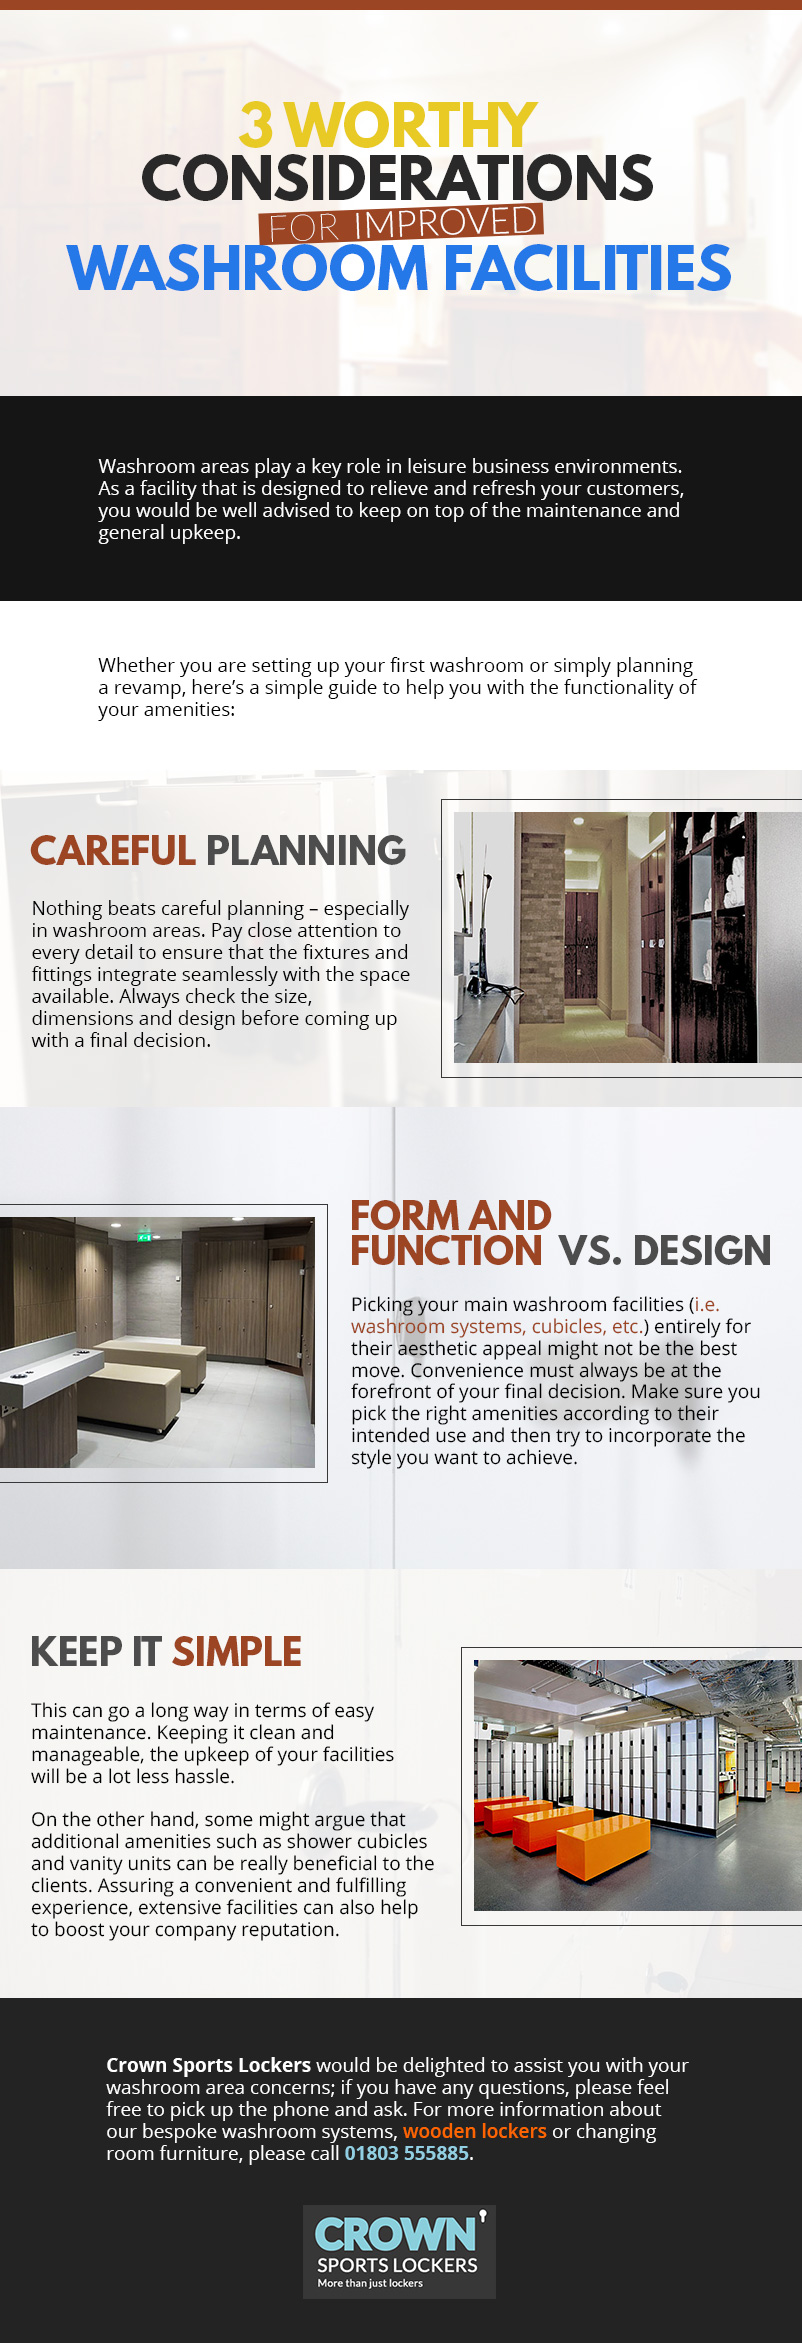 3-Worthy-Considerations-for-Improved-Washroom-Facilities